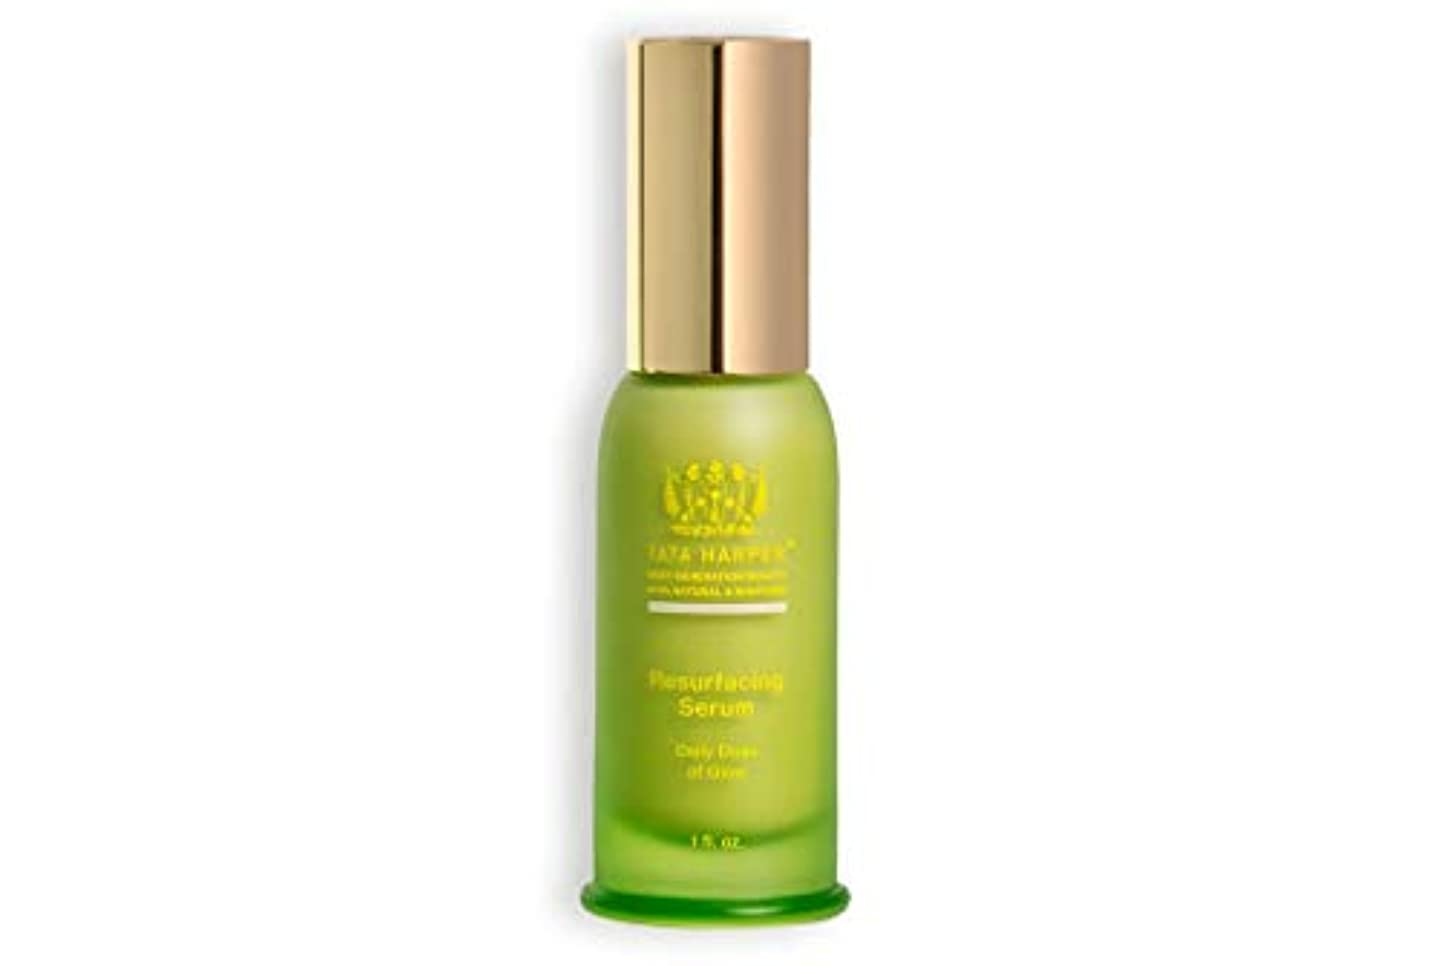 市場寄稿者Tata Harper Resurfacing Serum 1oz (30ml)